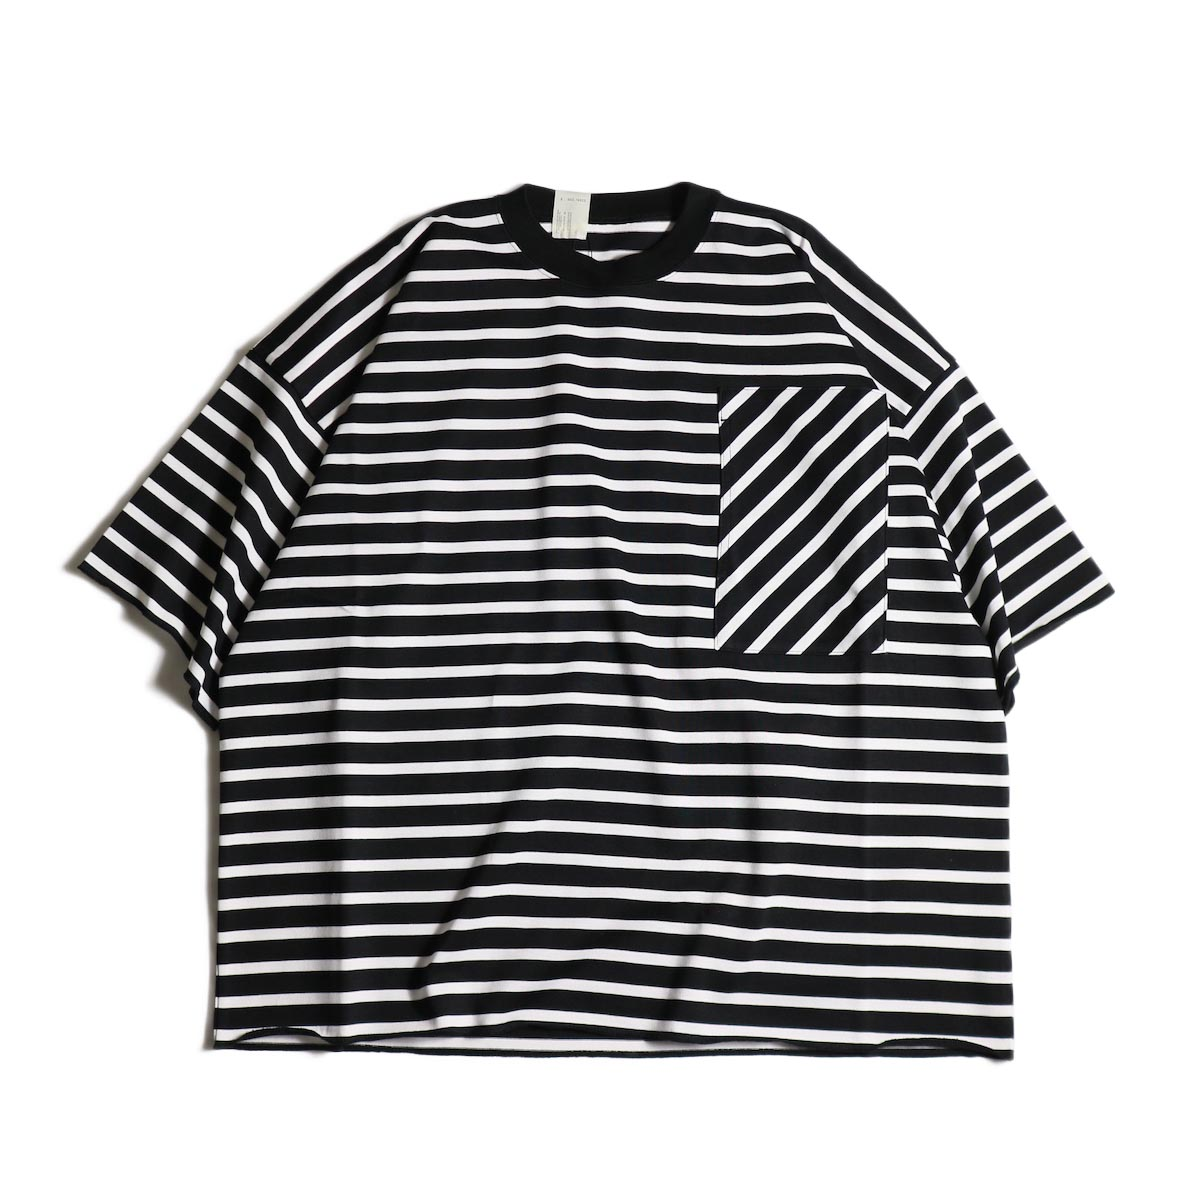 N.HOOLYWOOD / 1202-CS13-033 Big Tee (Black Border)正面